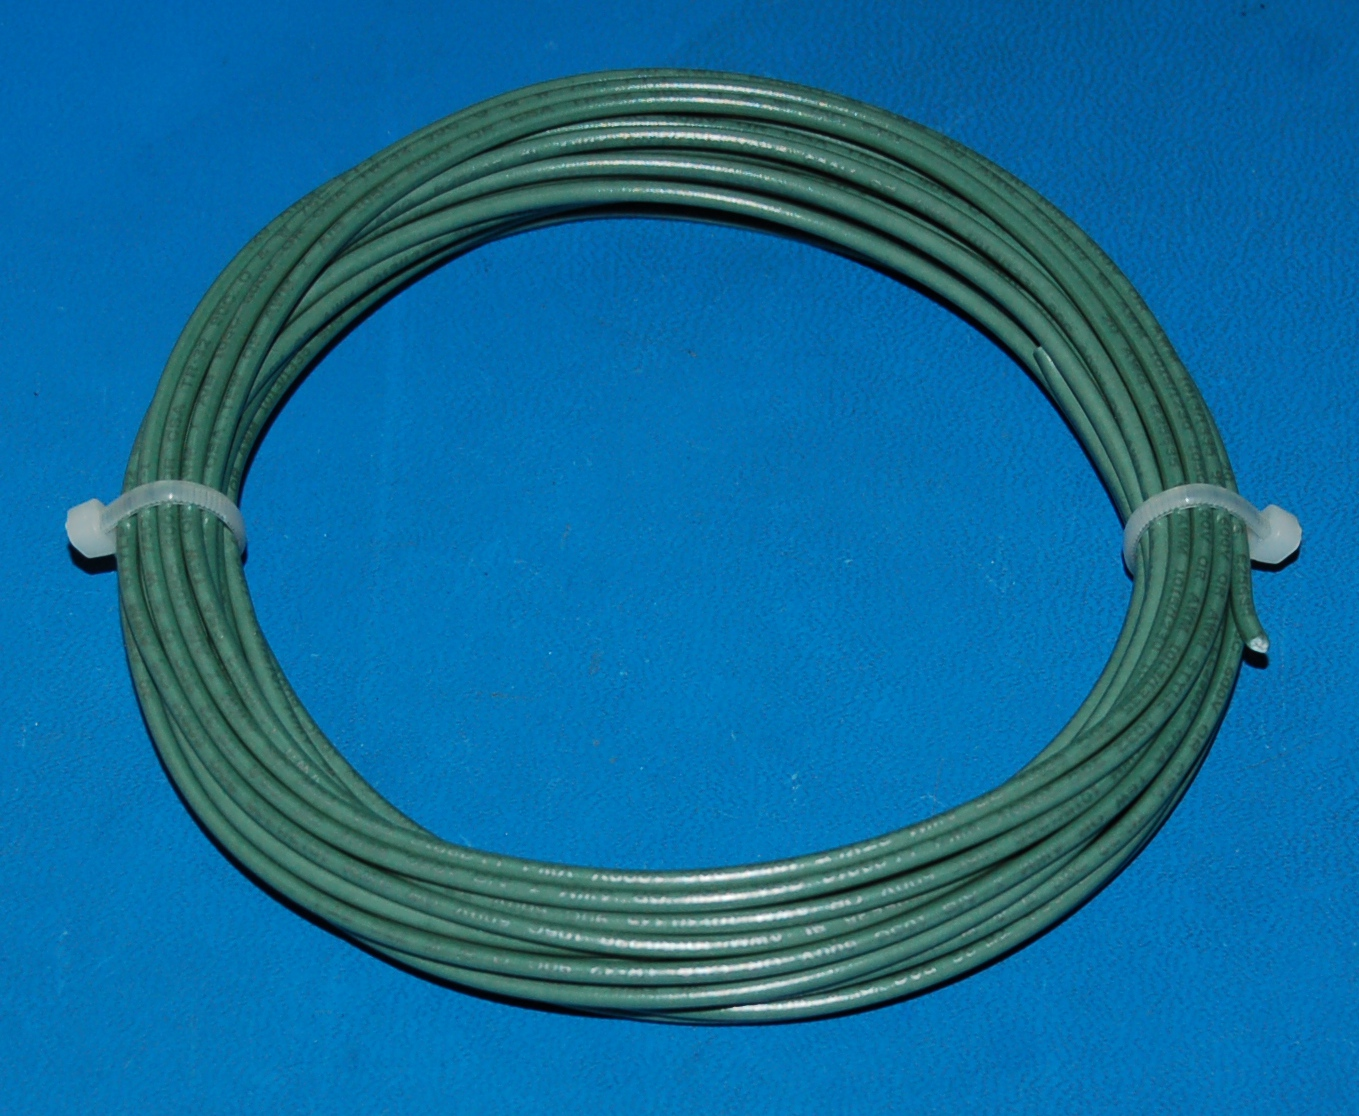 Solid Tinned Copper Wire, 1000V, #20 AWG x 25' (Green)